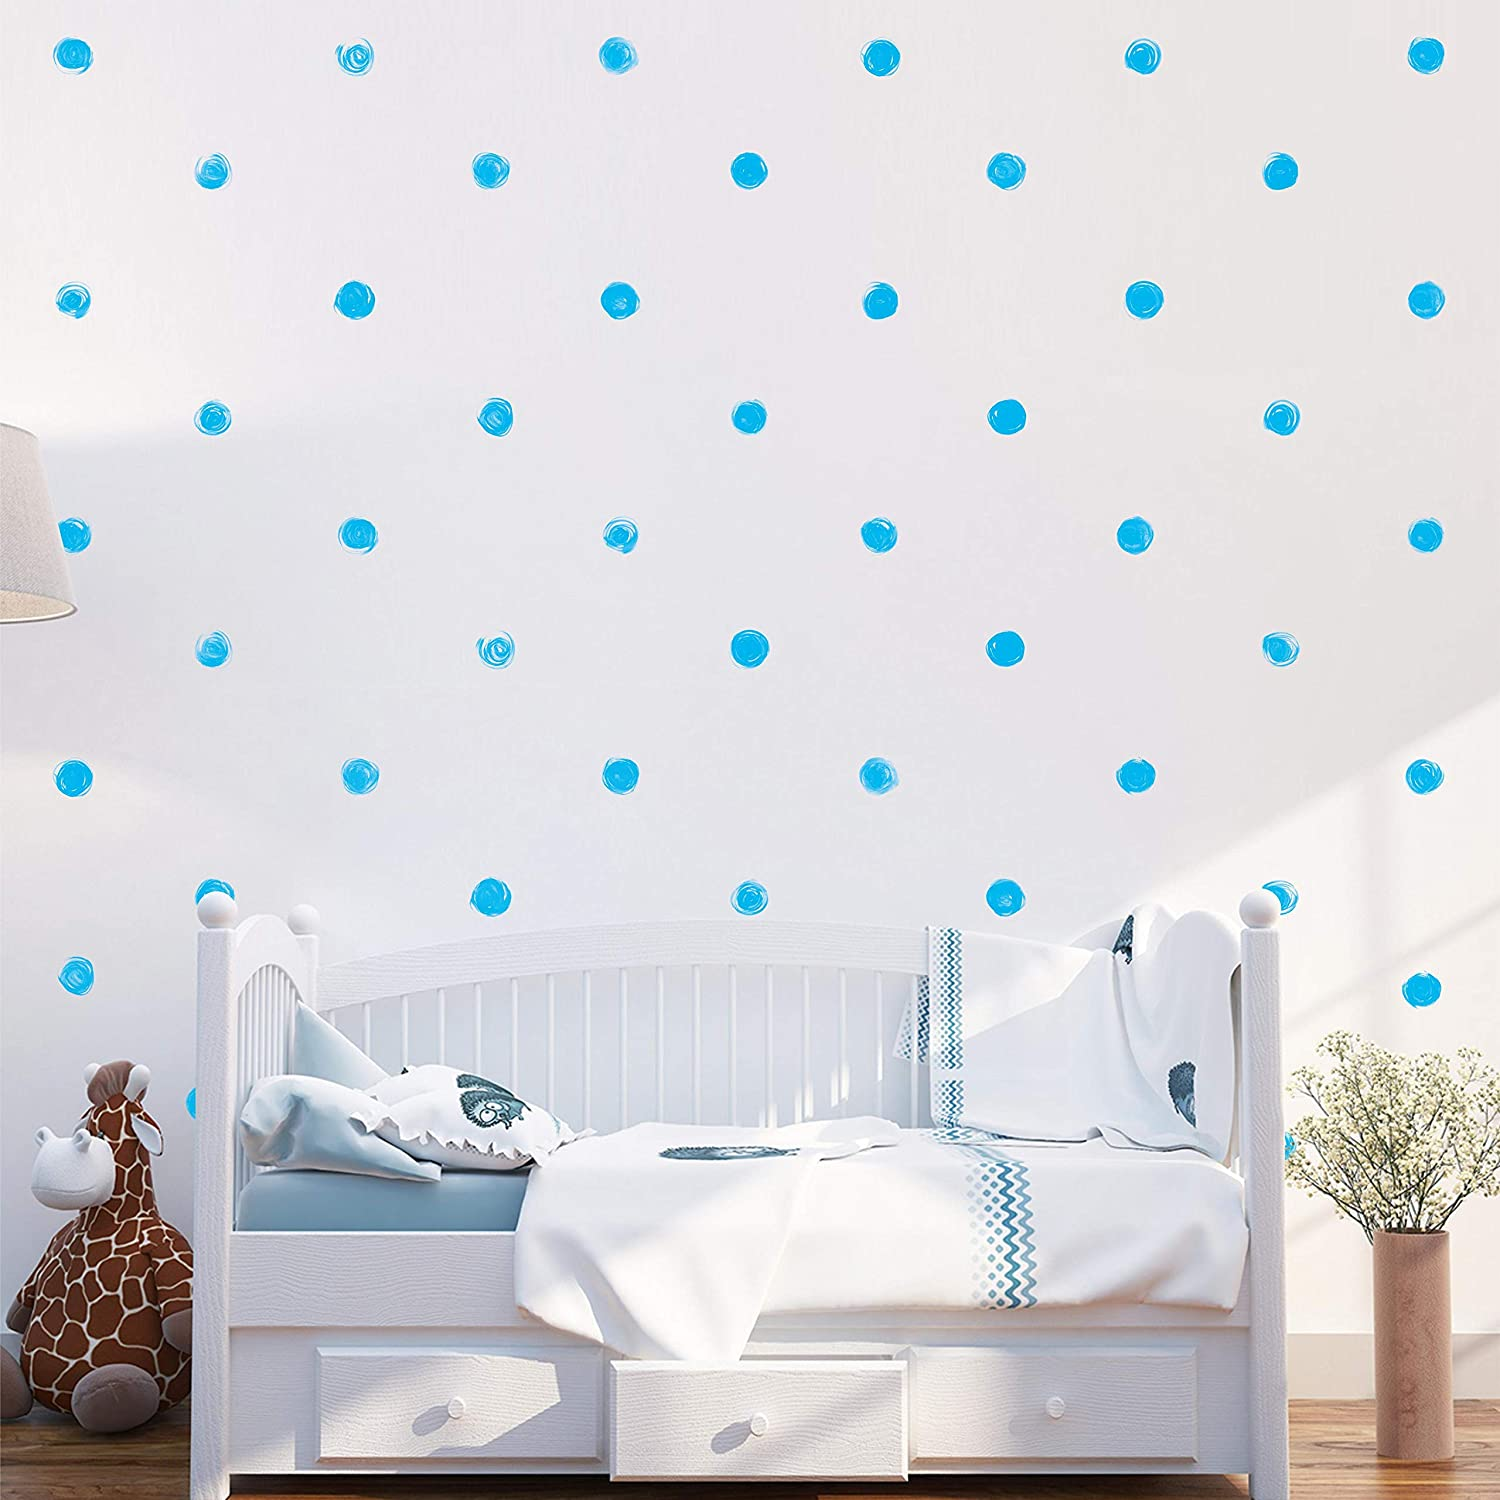 """Watercolor Blue Polka Dot Wall Decals 2.4""""  Wall Decal Dots  Bedroom Wall Decor  Round Circle Stickers For Walls Decoration  Kids Wall Decals  Wall Stickers & Murals  Gold Wall Decor  Vinyl Polka Dot Décor"""